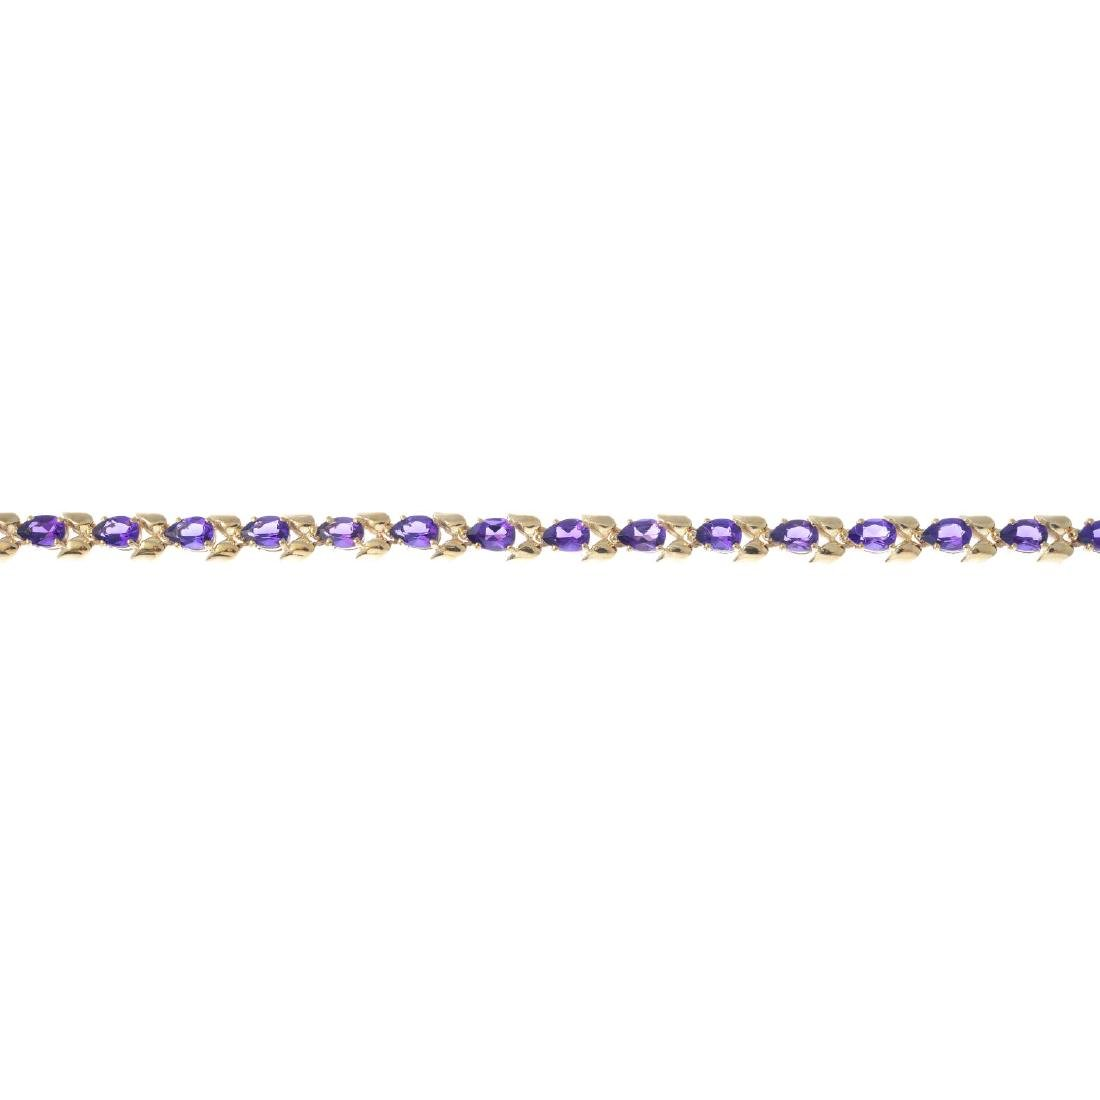 A 9ct gold amethyst bracelet. Designed as a series of